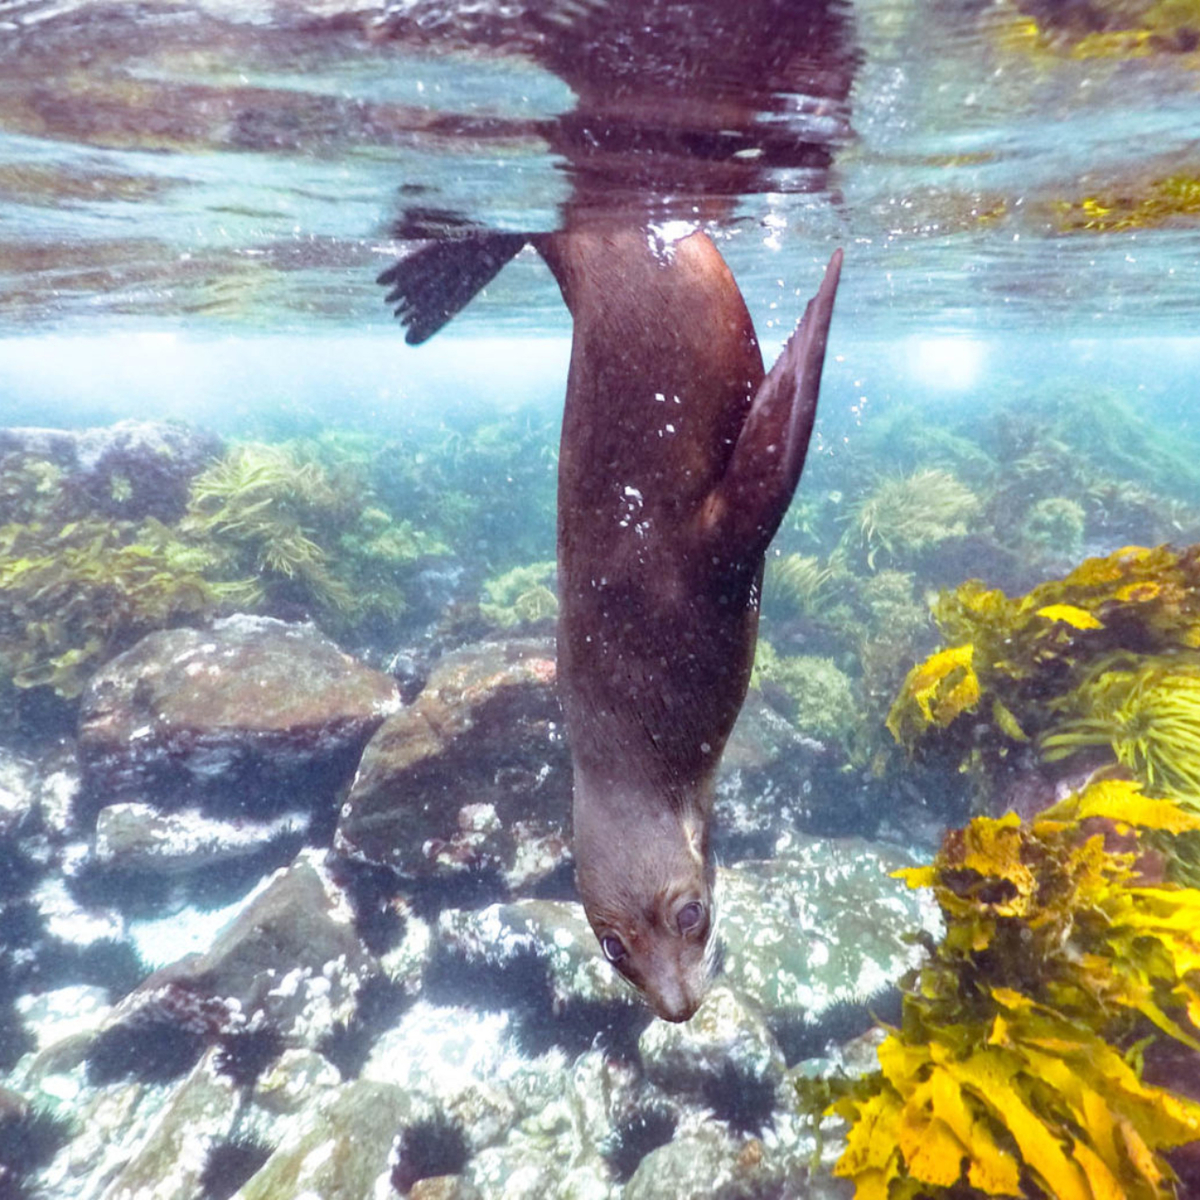 Snorkeling with Seals at Montague Island, NSW, Australia: The most affordable wildlife experience in Australia!